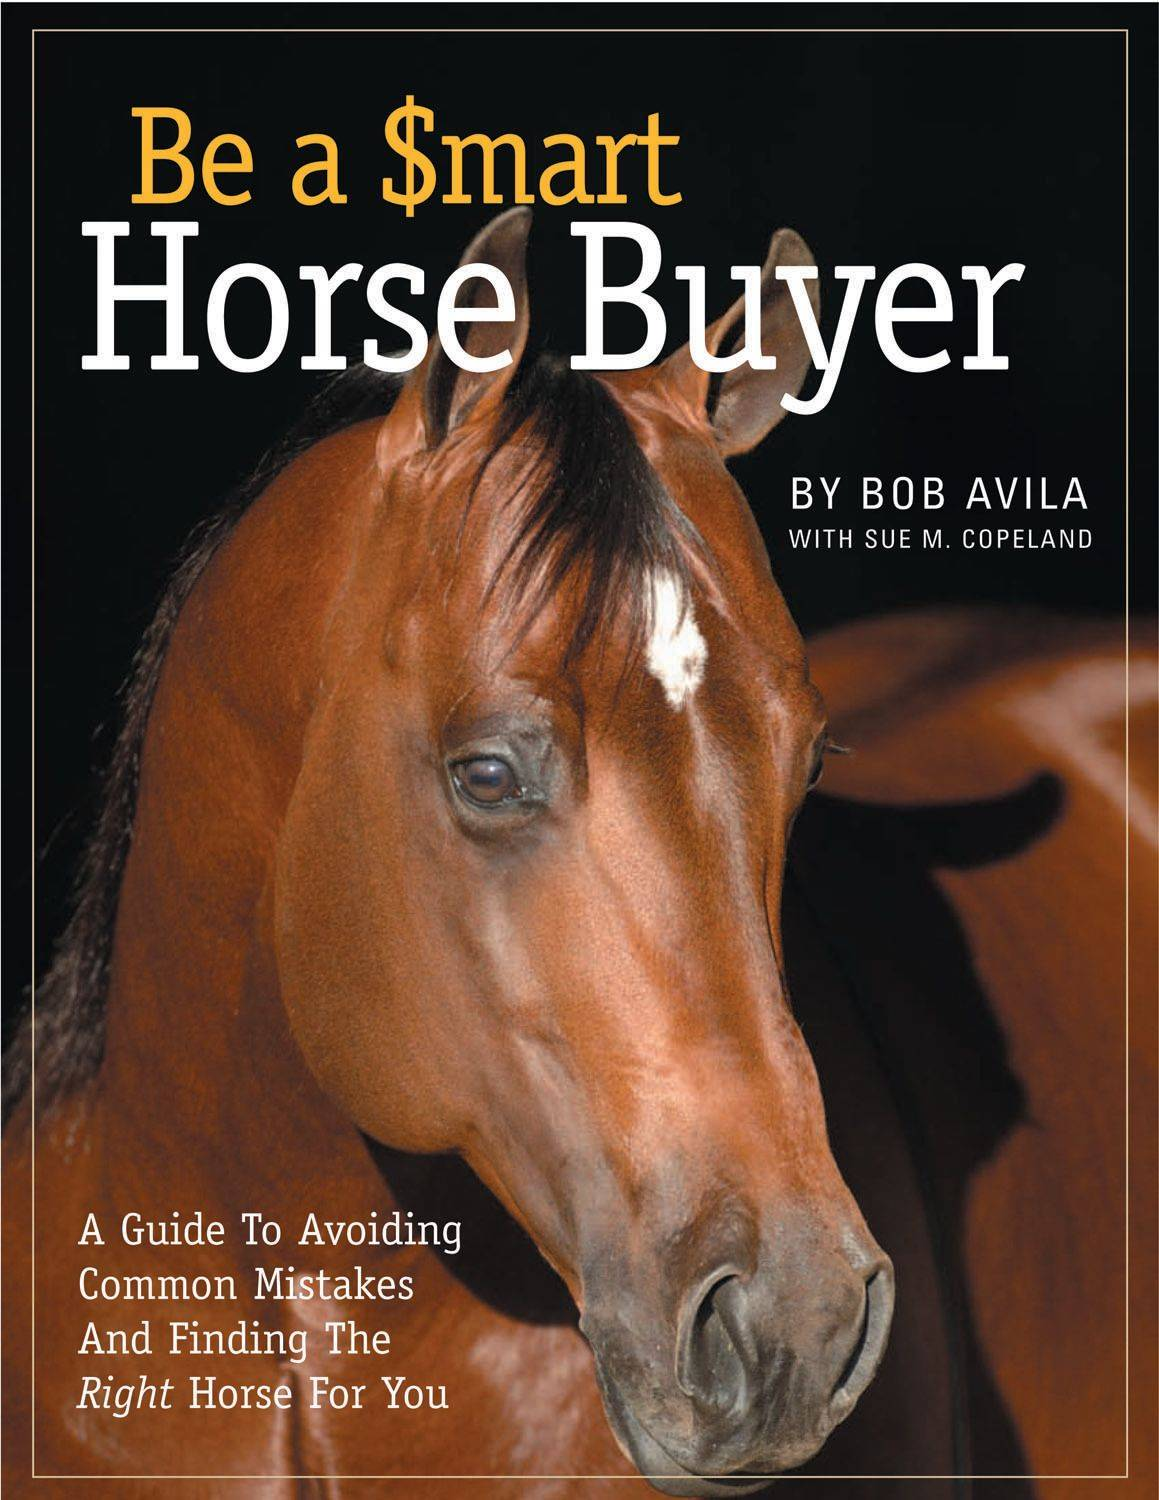 Be A Smart Horse Buyer by Bob Avila with S Copeland